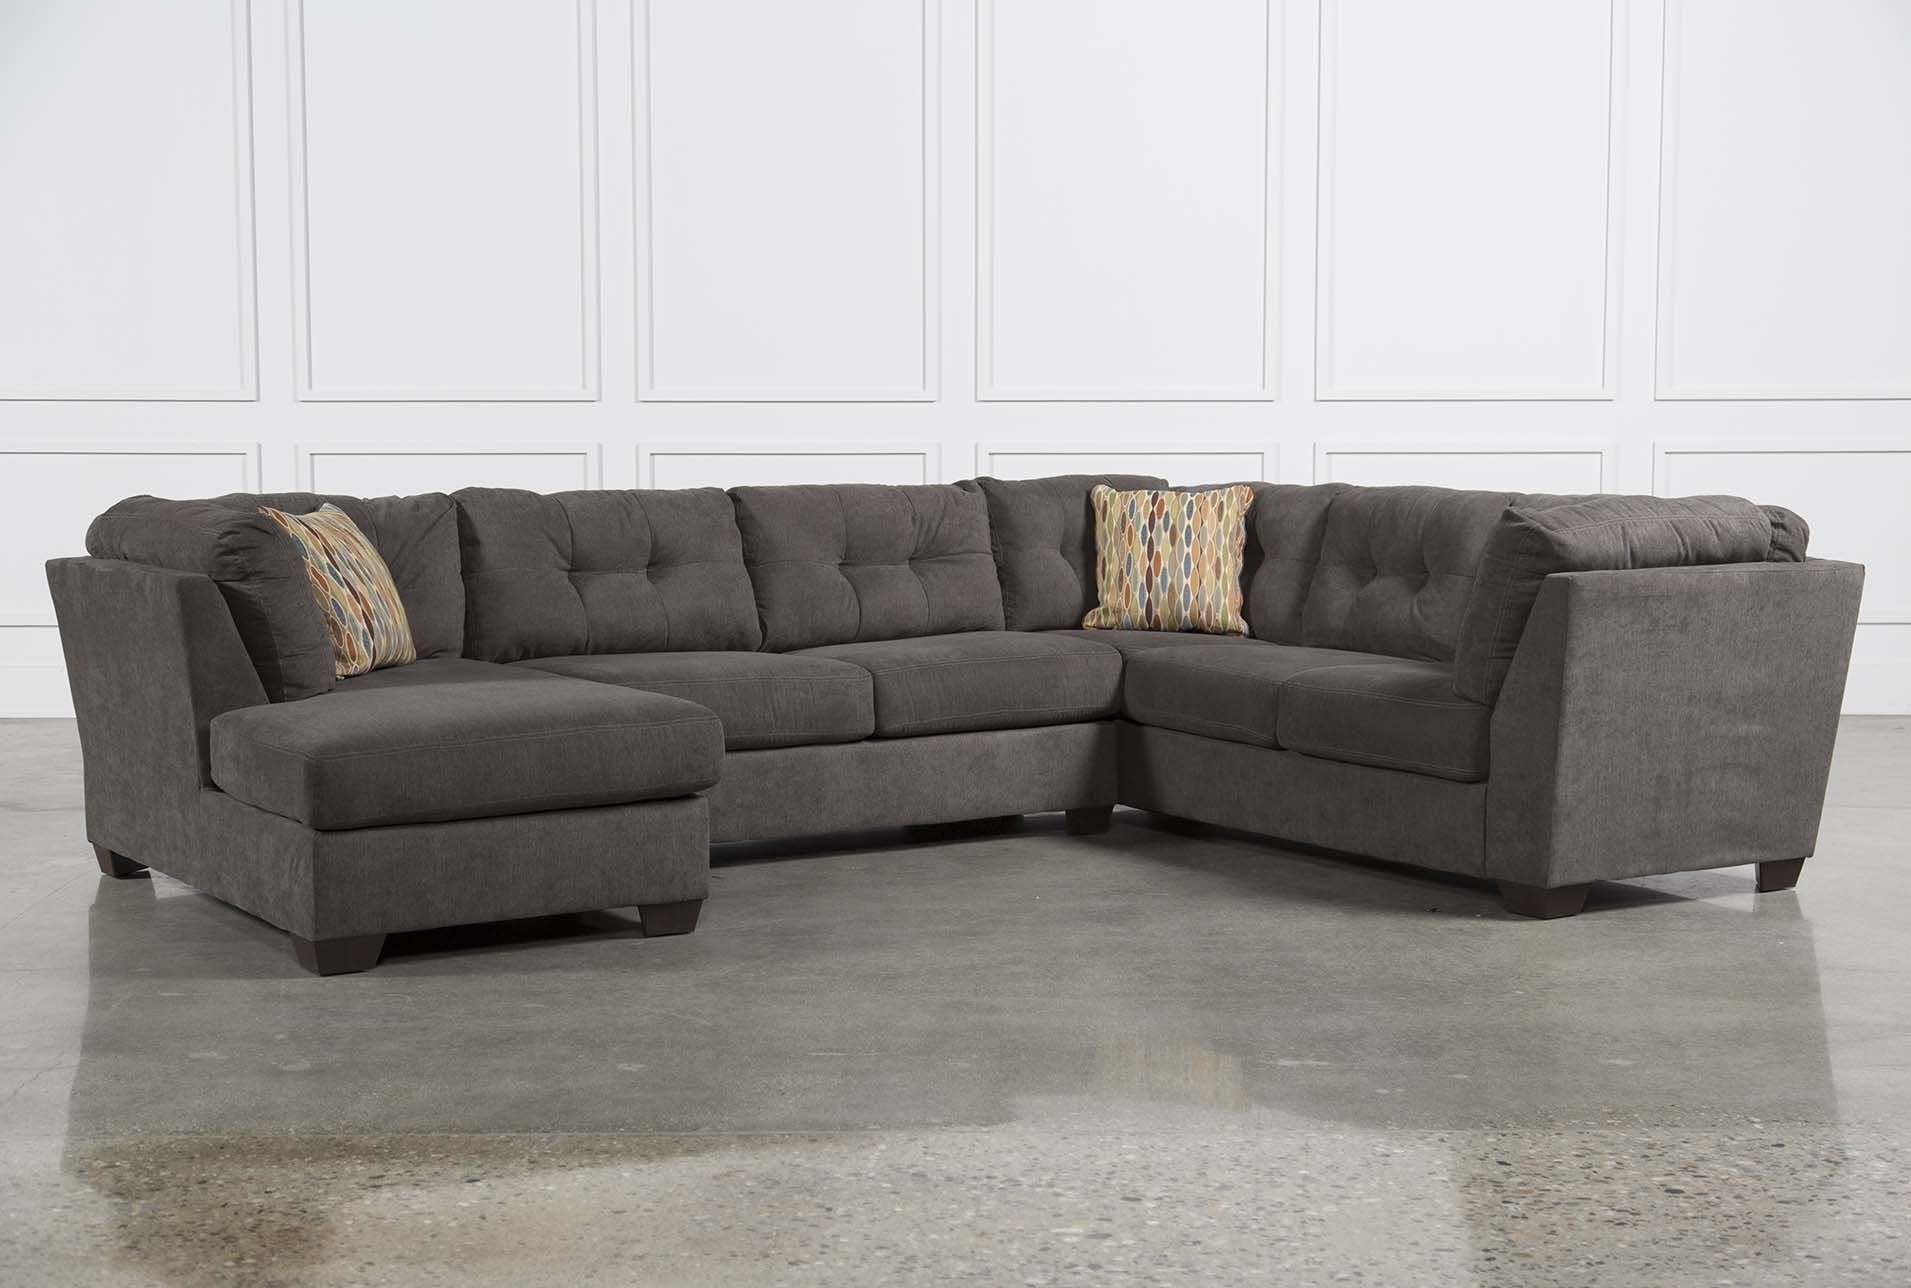 Best Sofa Sectionals With Chaise 47 In Sectional Sofas Chicago With For Sectional Sofas At Chicago (View 8 of 10)